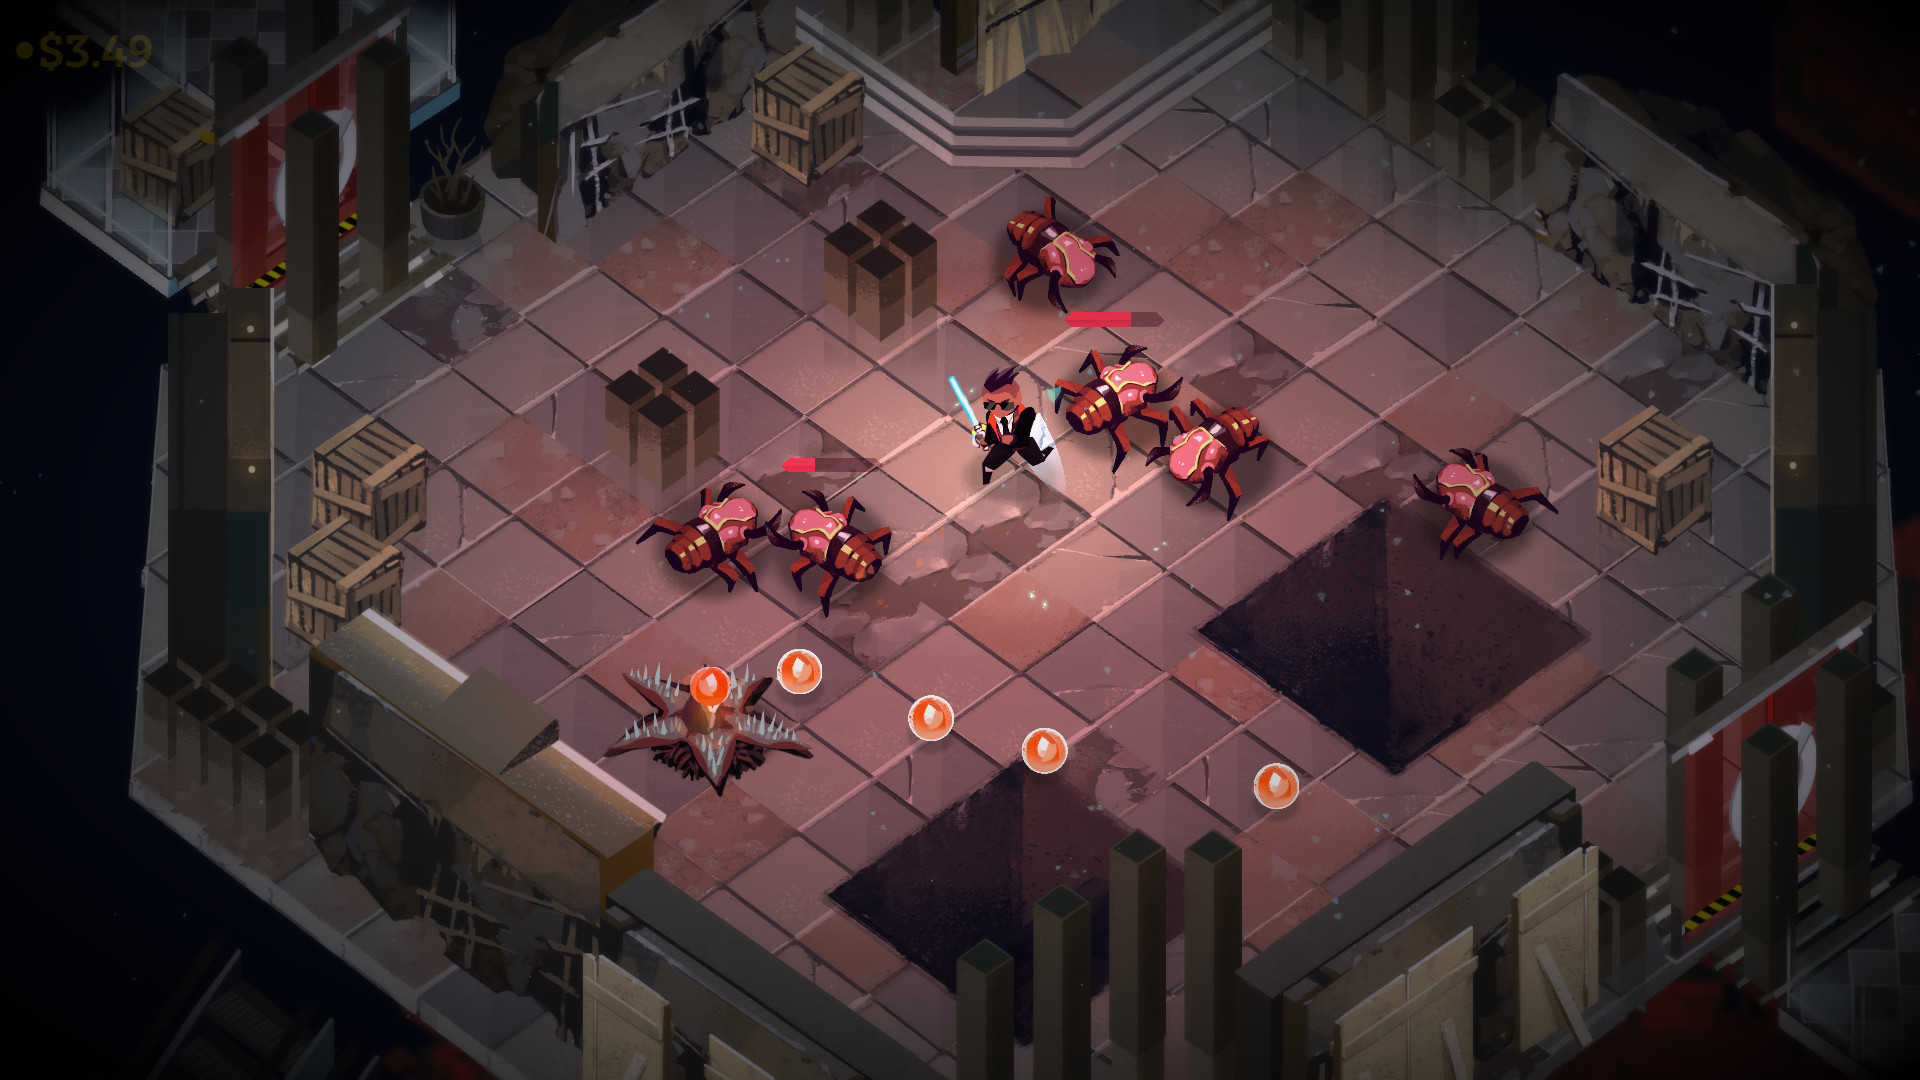 A Boyfriend Dungeon battle screenshot where the polayer character is surrounded by brab-like enemies in a dungeon area.